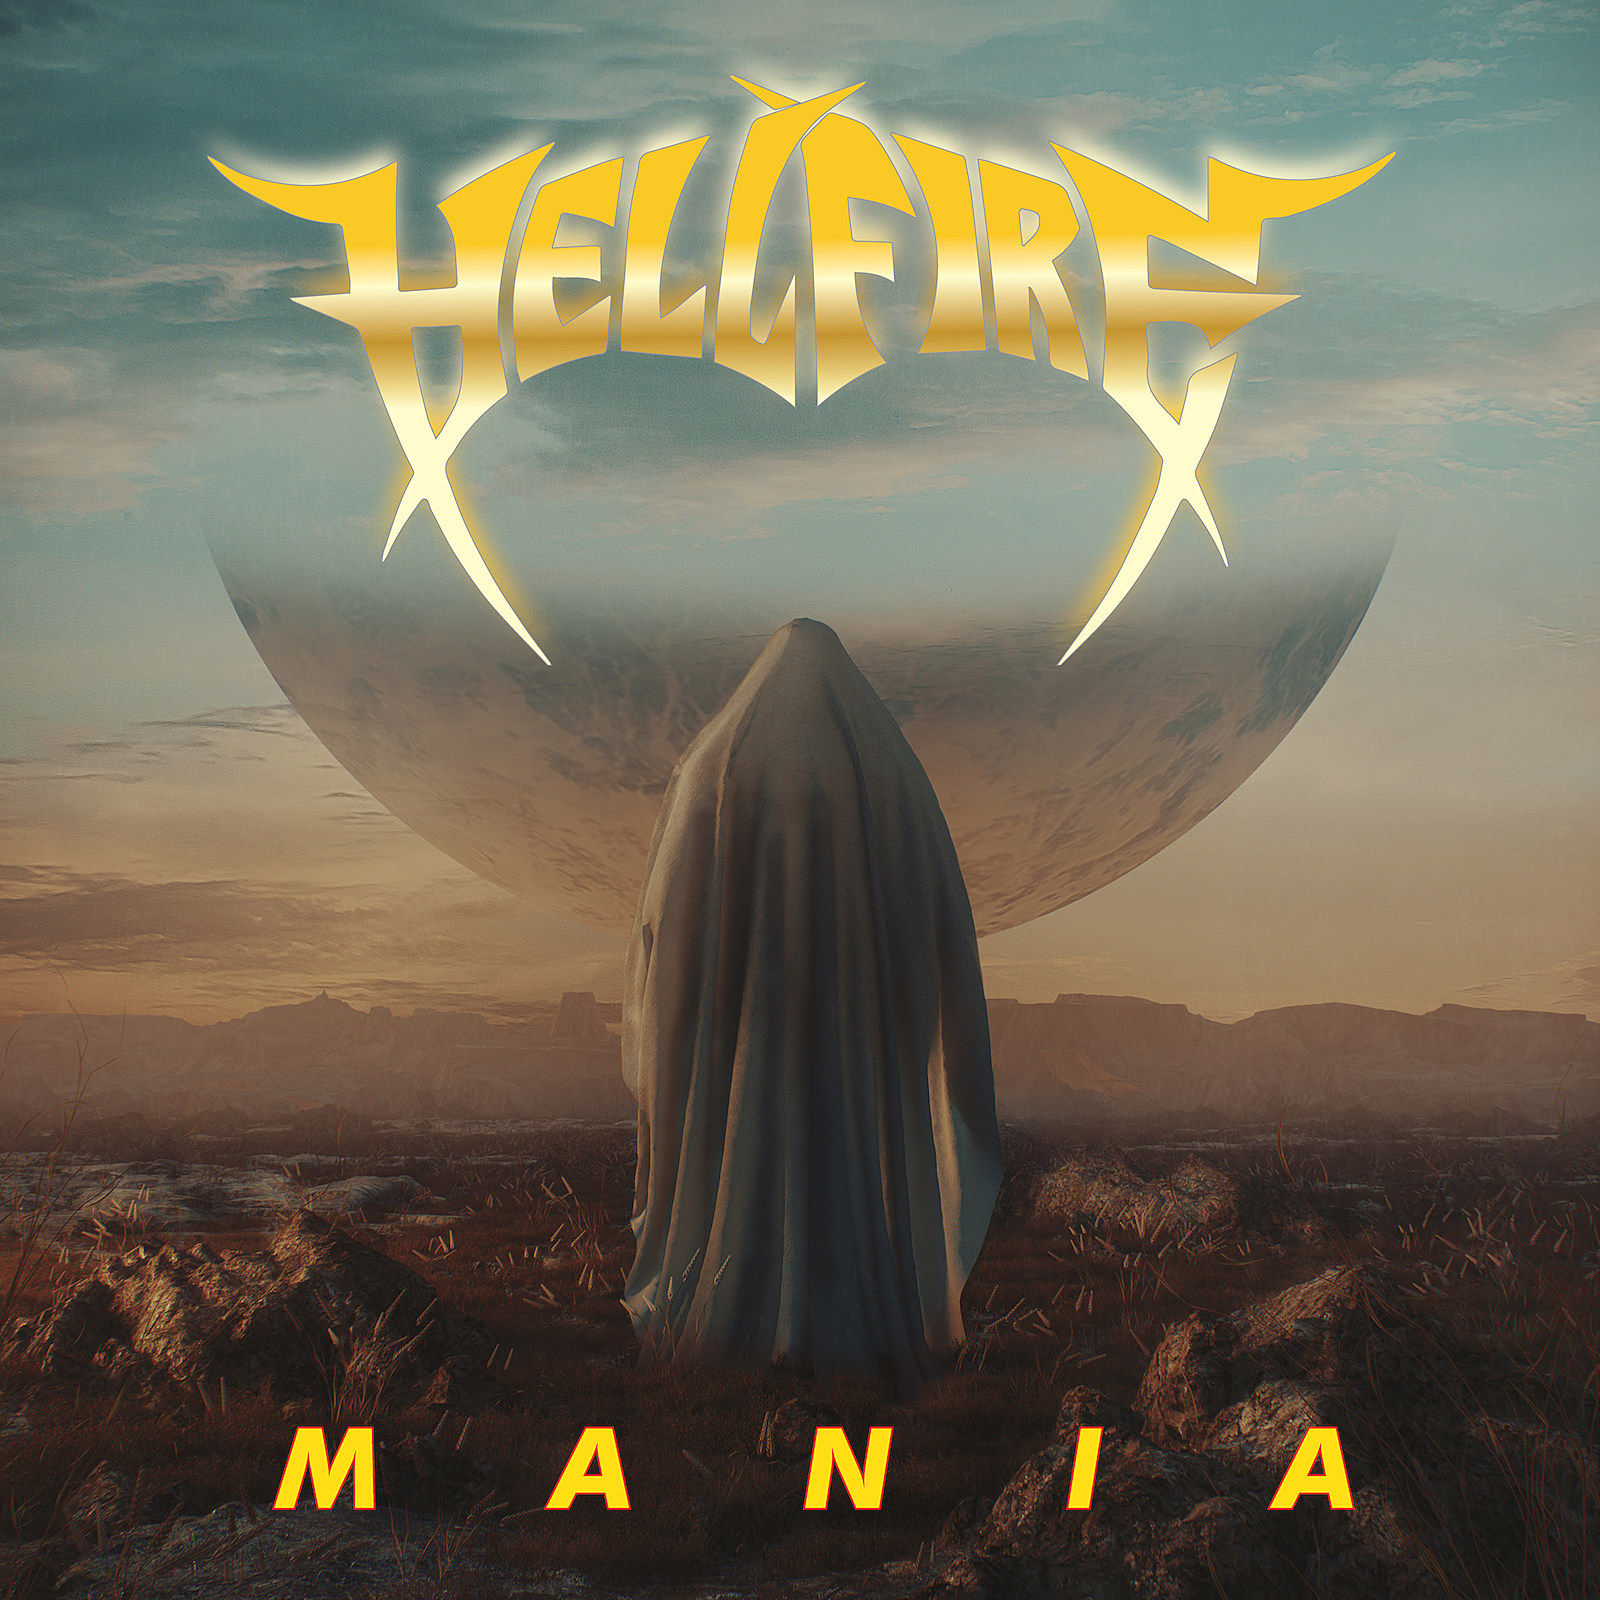 Hell Fire Mania